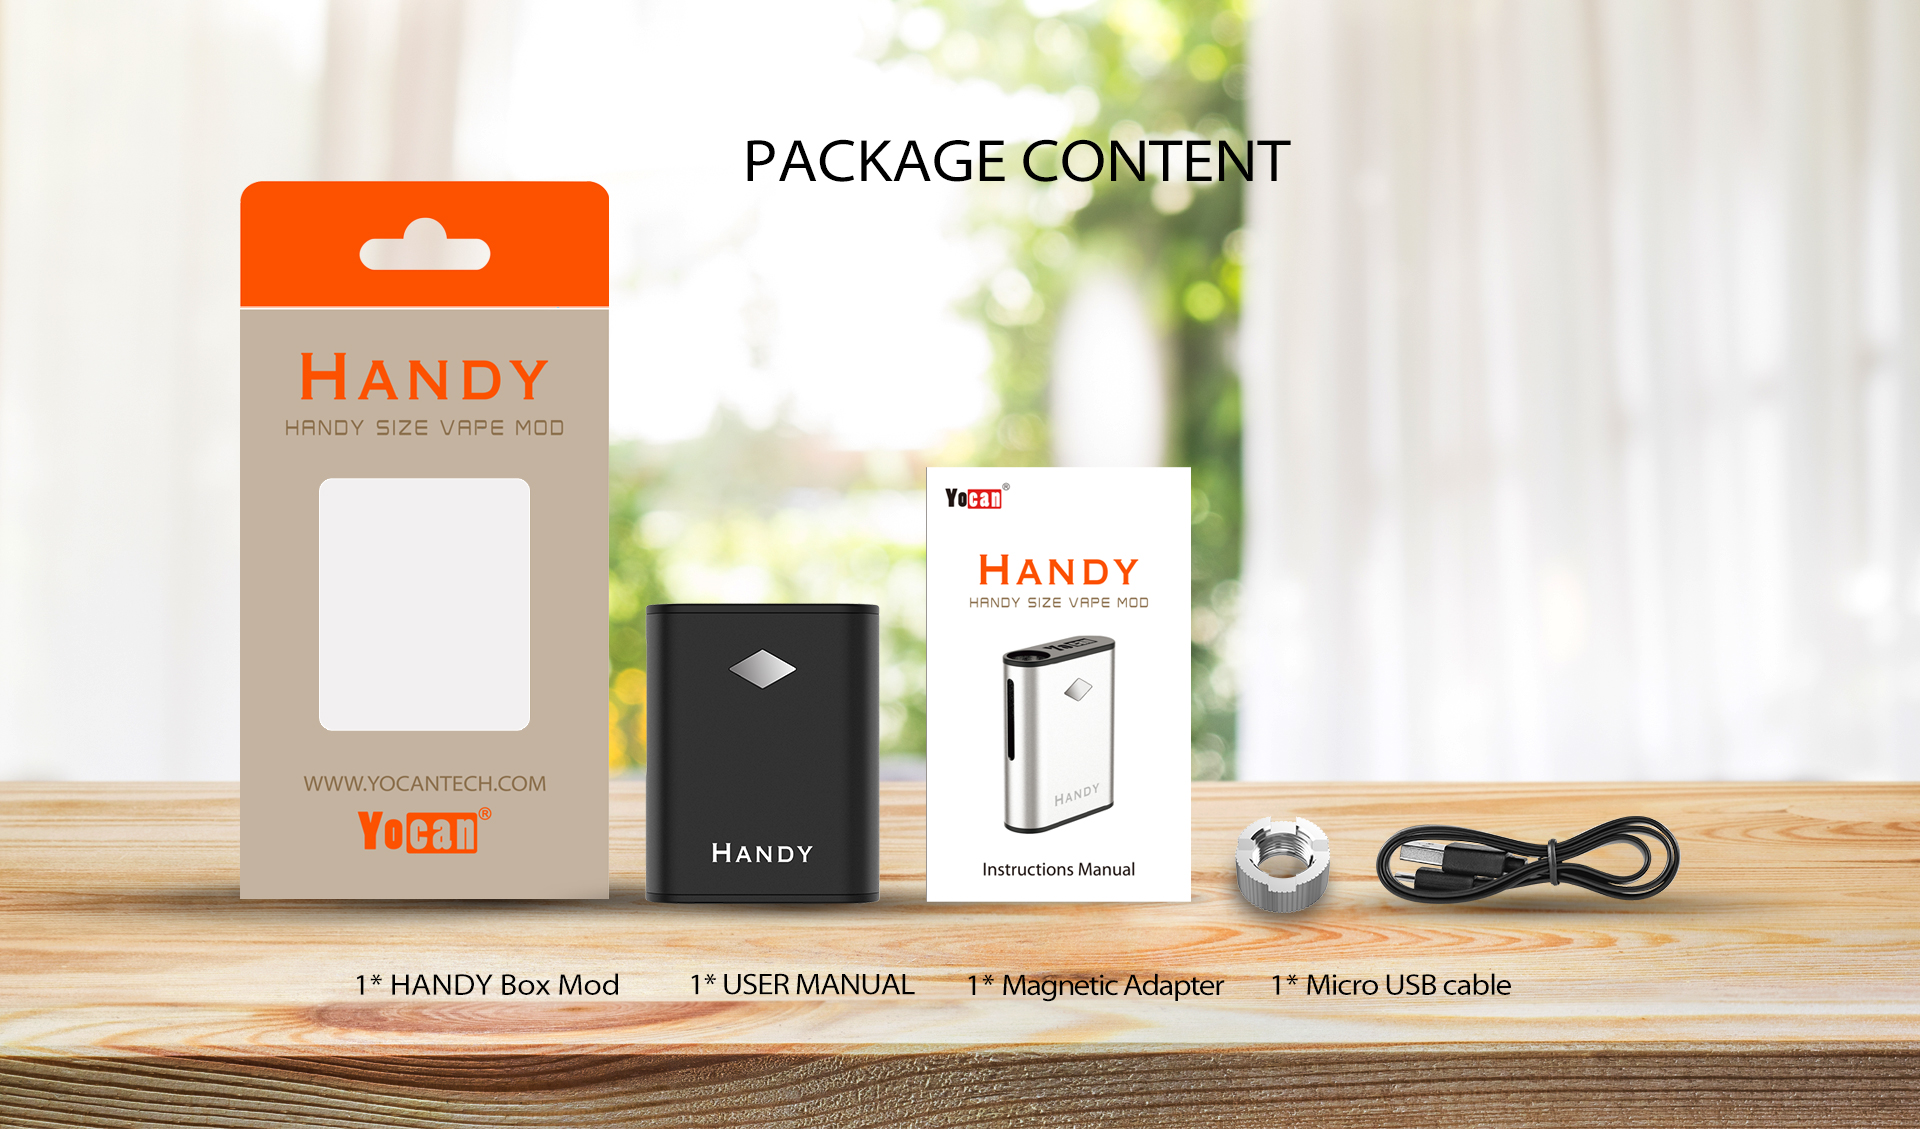 Yocan Handy Vape Battery Package Content